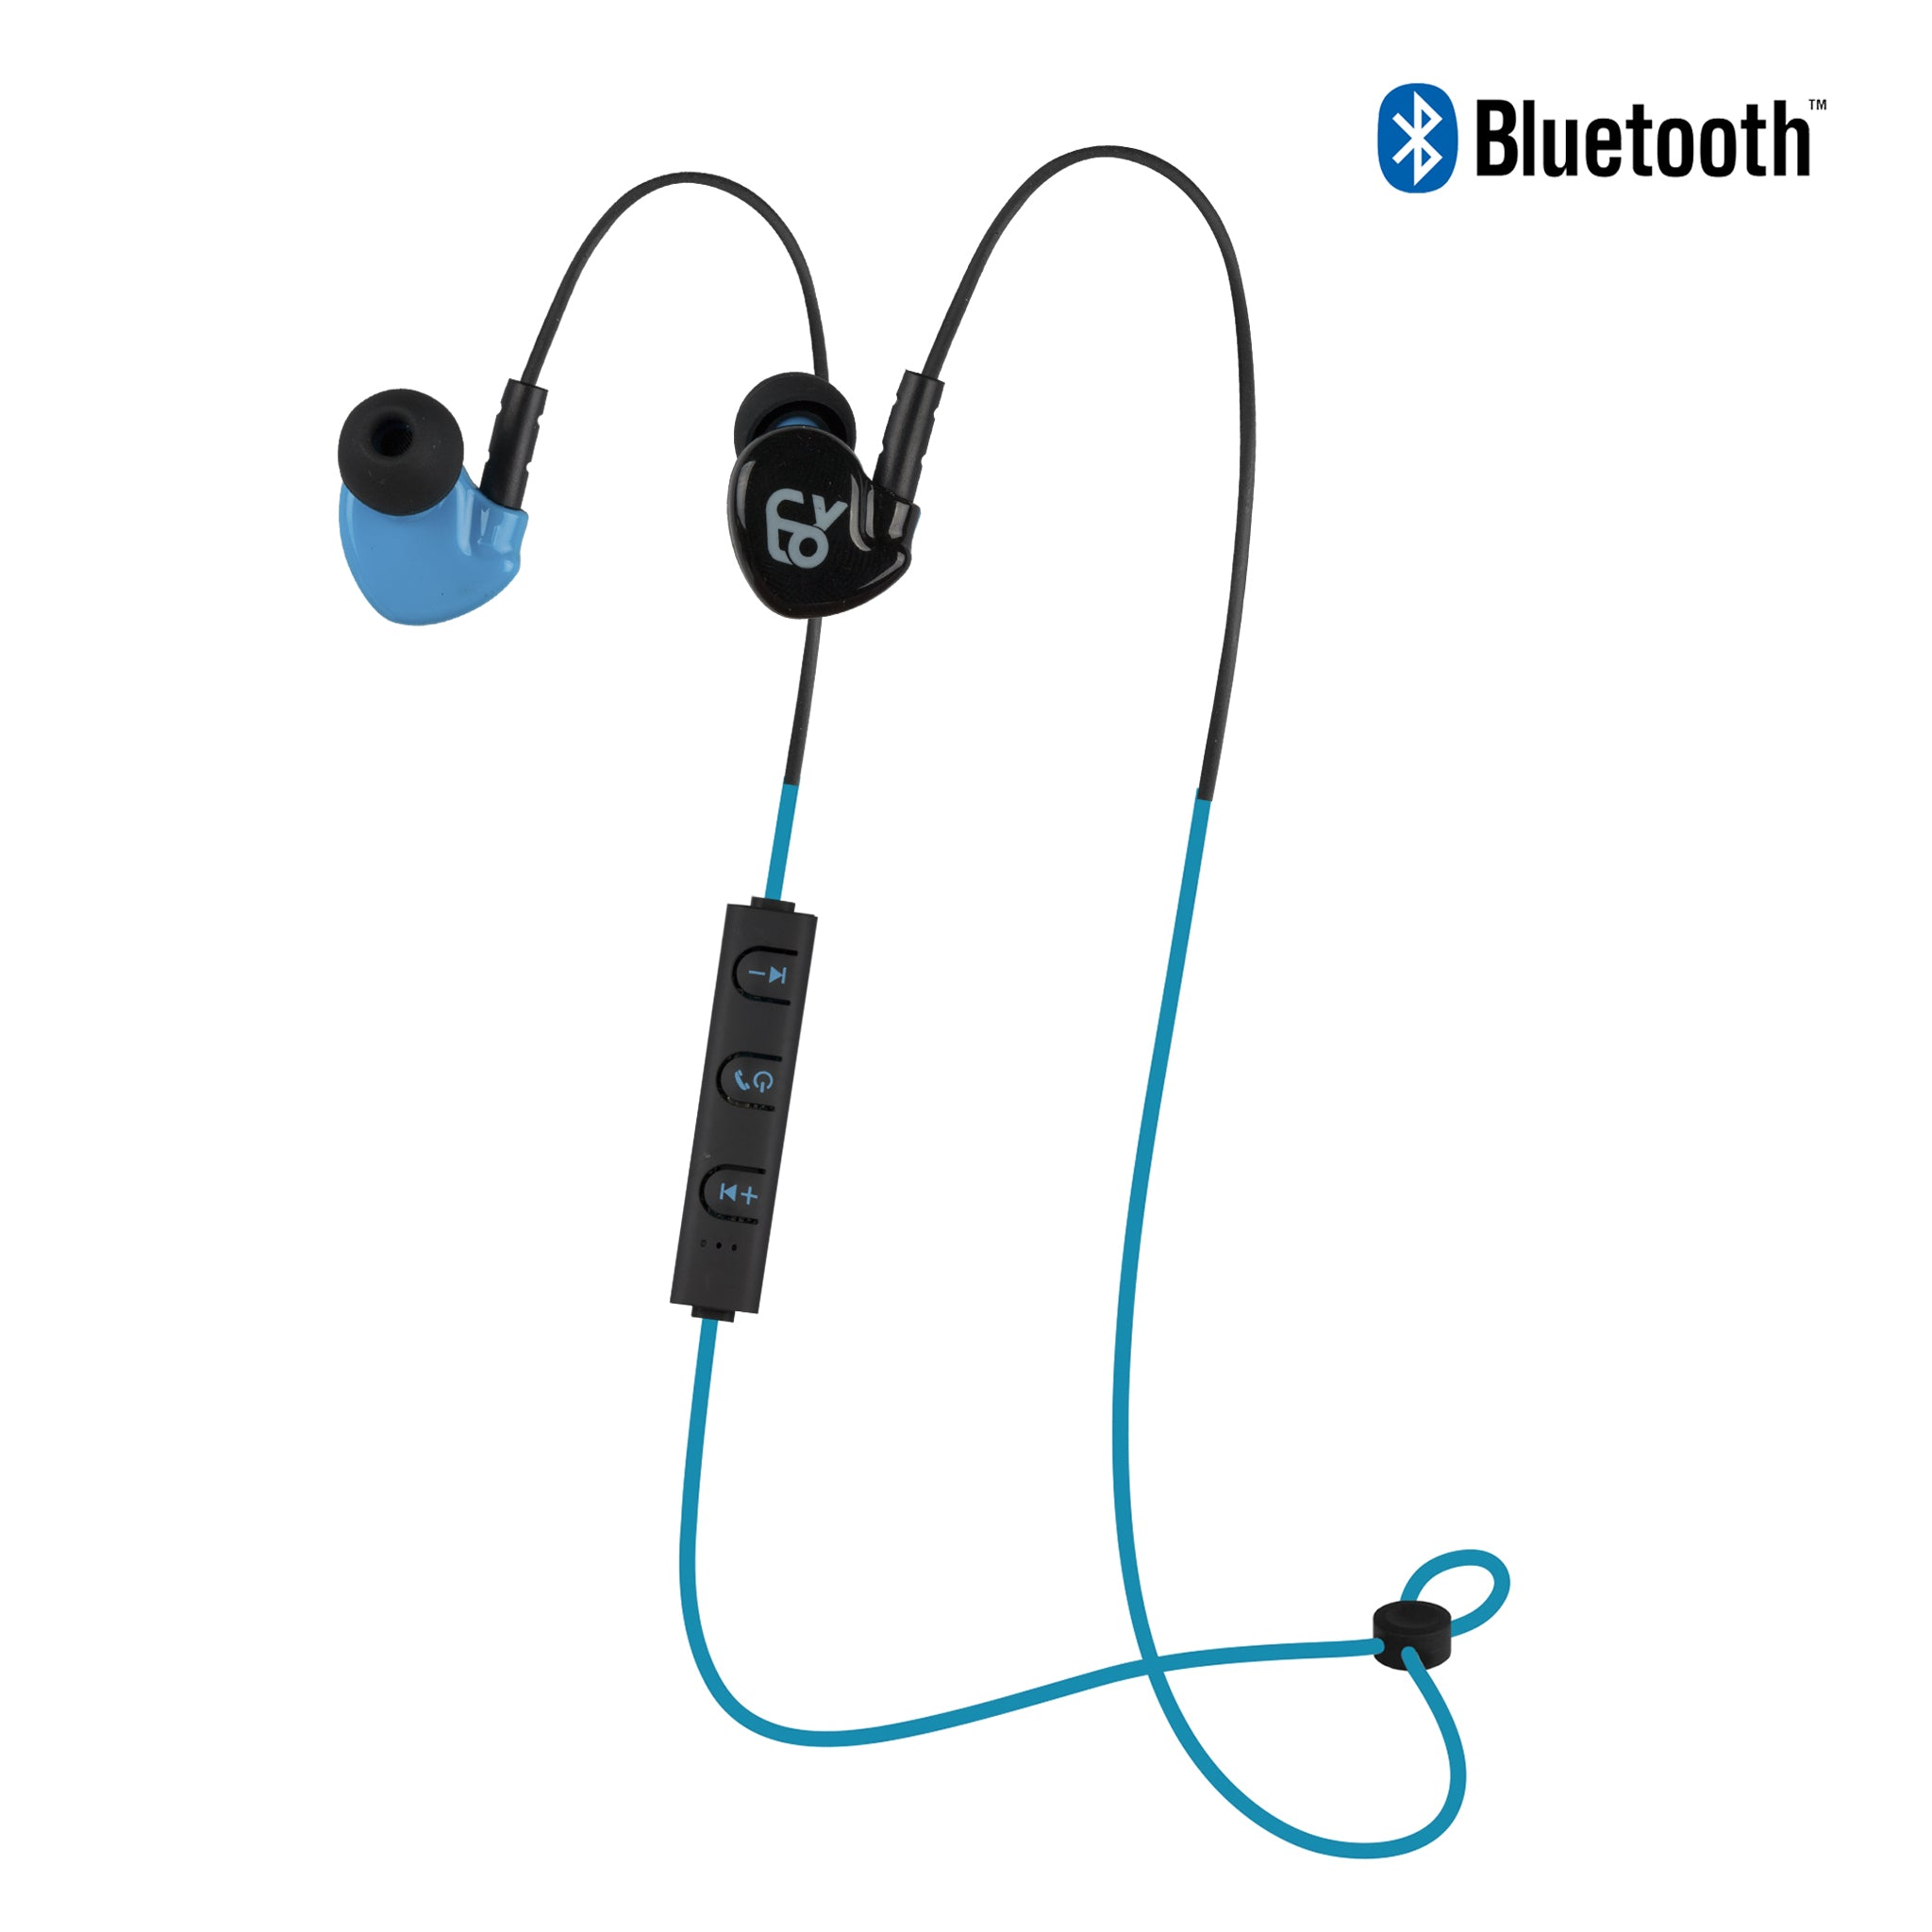 Wireless bluetooth earbuds blue - earbuds bluetooth wireless iphone 6